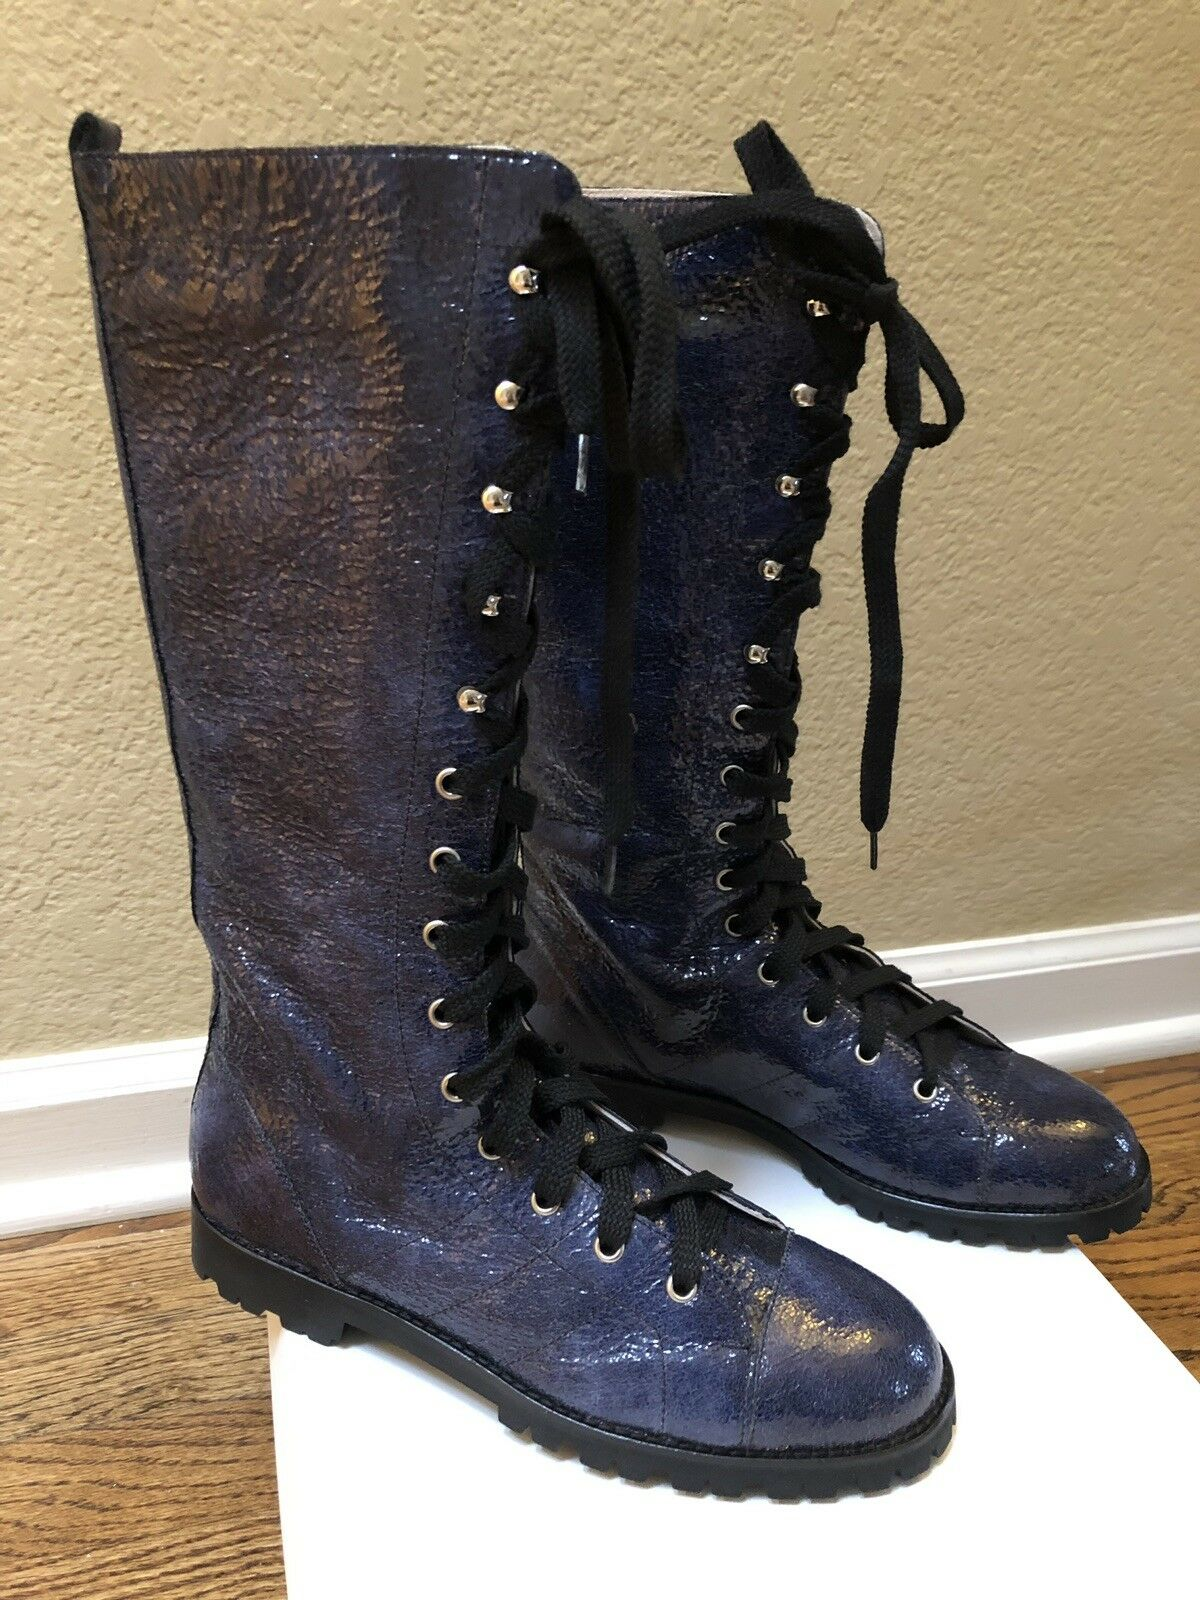 Marc Jacobs Laced Up Boots Size EUR 39.5 (US 9-9.5) New